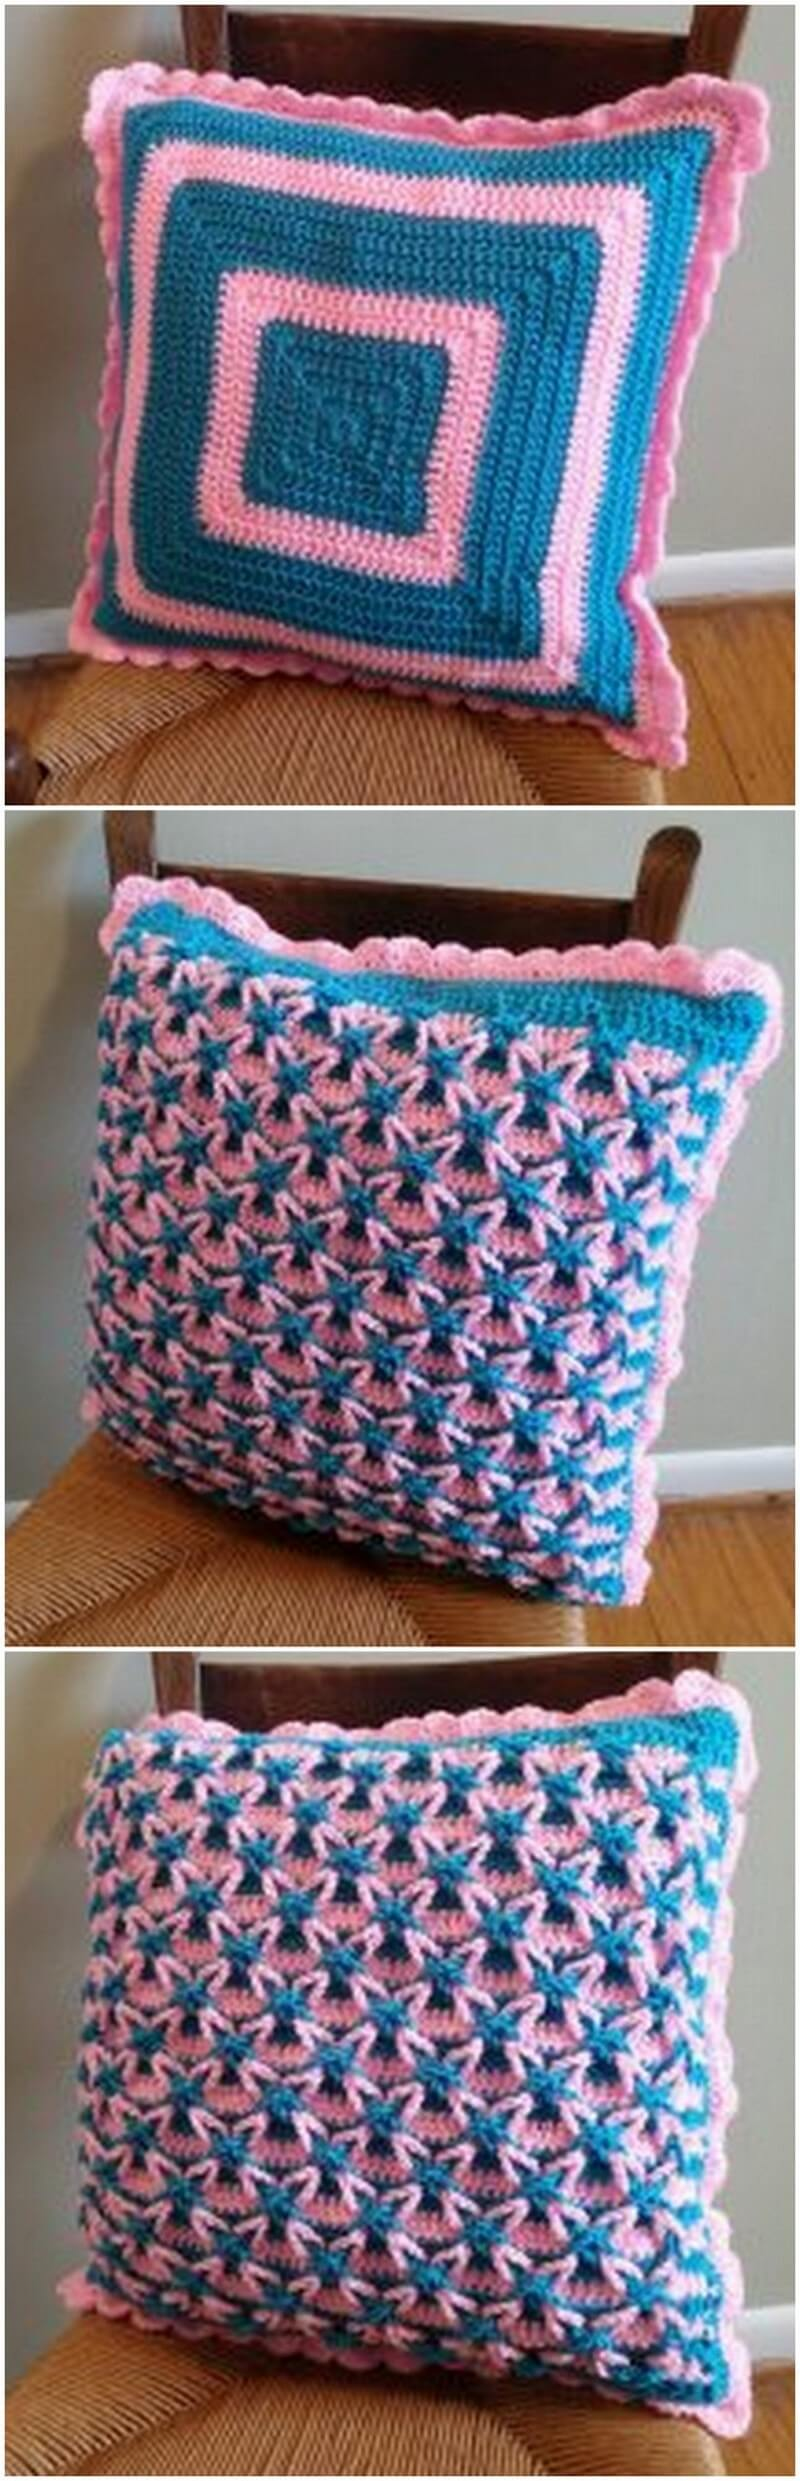 Crochet Pillow Pattern (55)